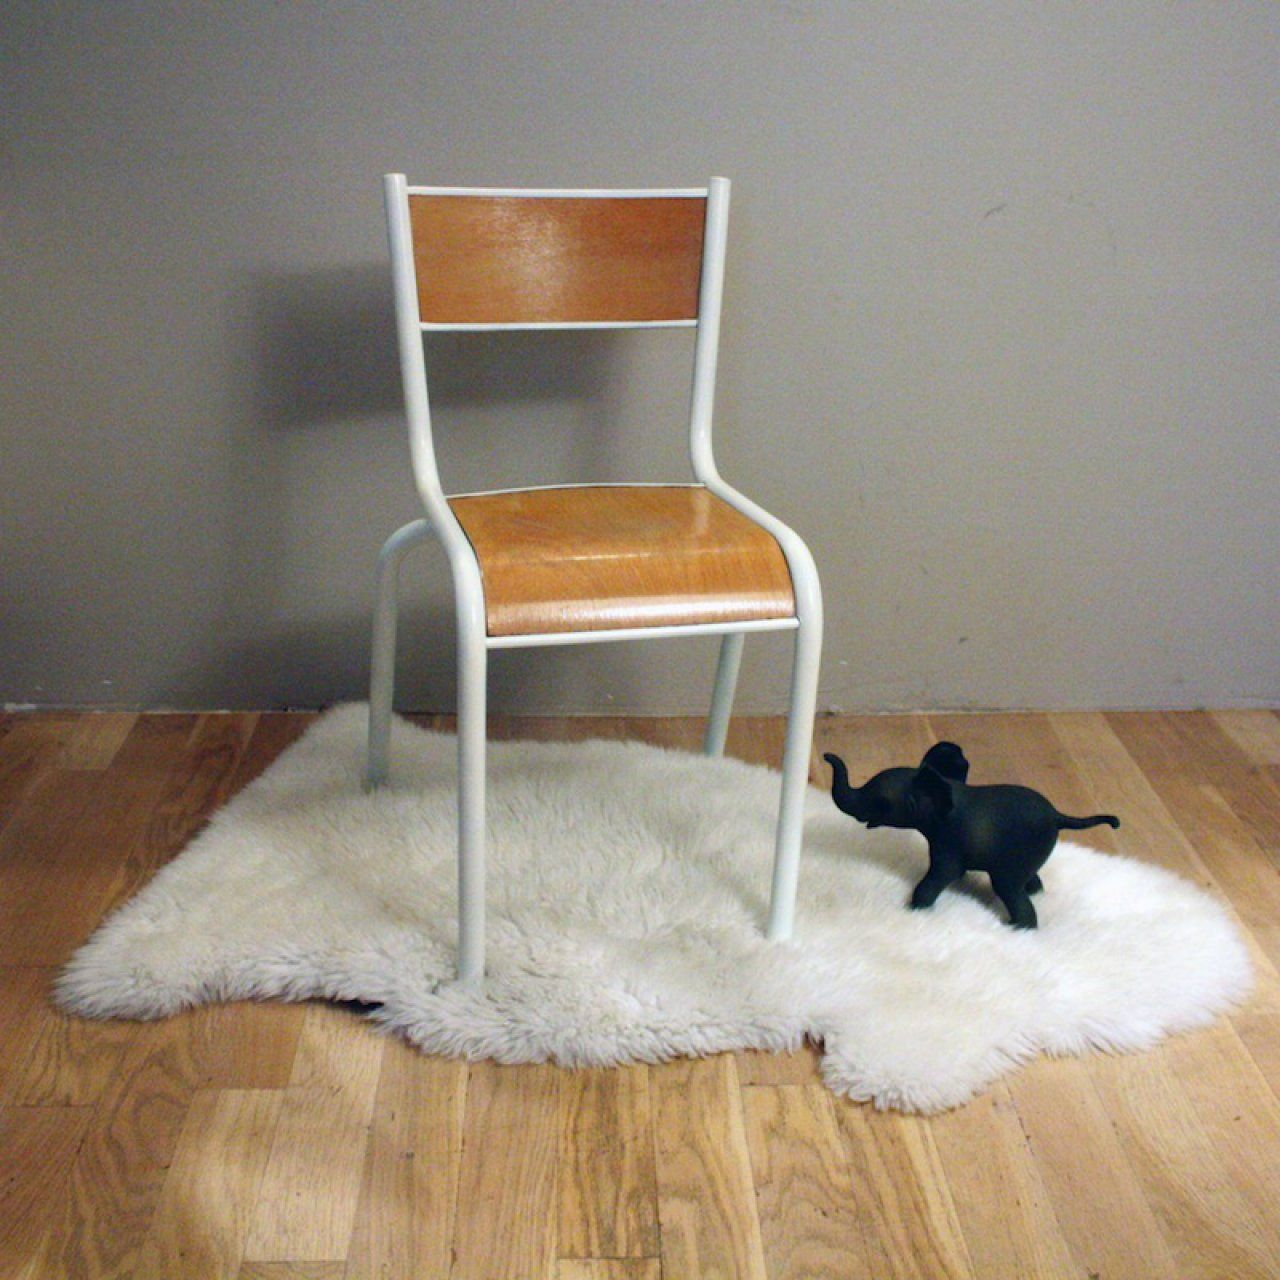 Renover Une Chaise D Ecolier Chaise Ecolier Customiser Chaise Chaise